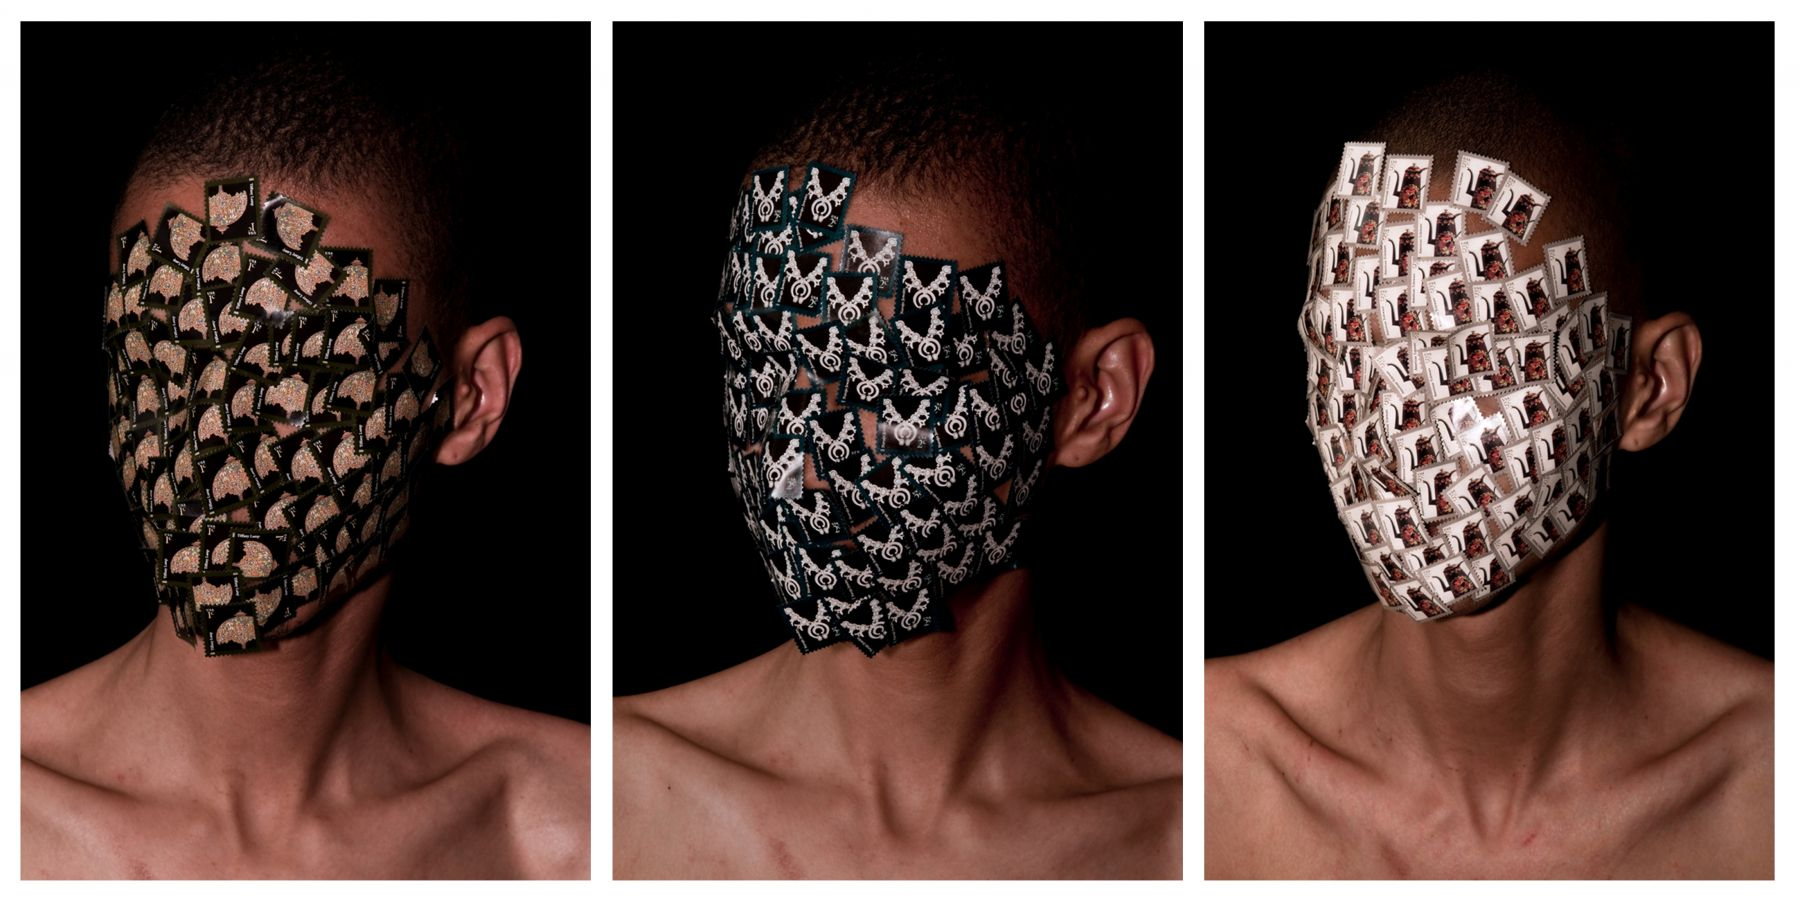 Wilmer Wilson IV Henry Box Brown: Heads Triptych archival pigment prints, 23 x 15 inches each